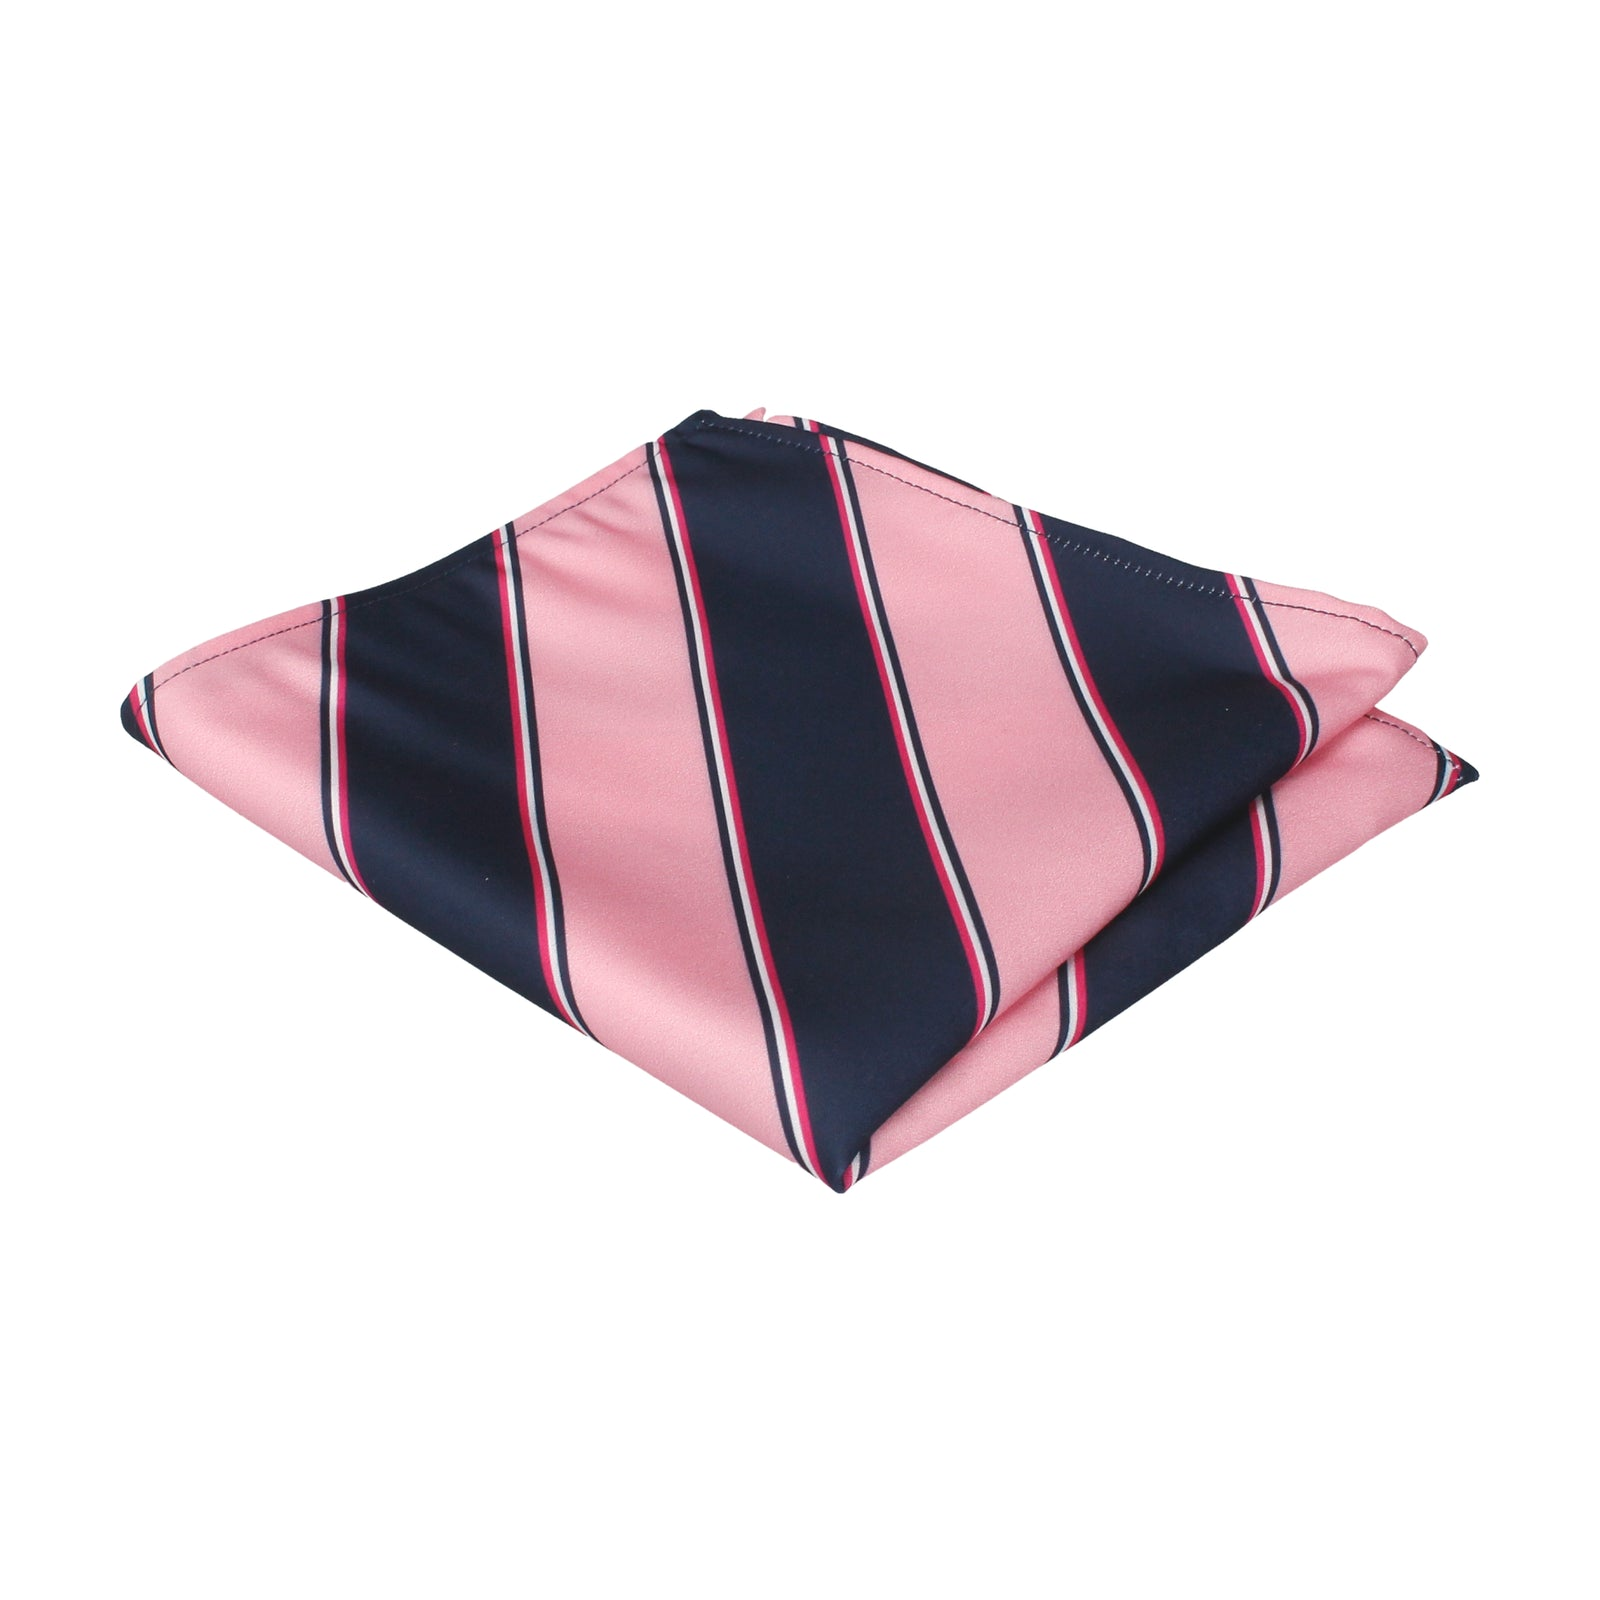 Arundel in Pink & Navy Pocket Square